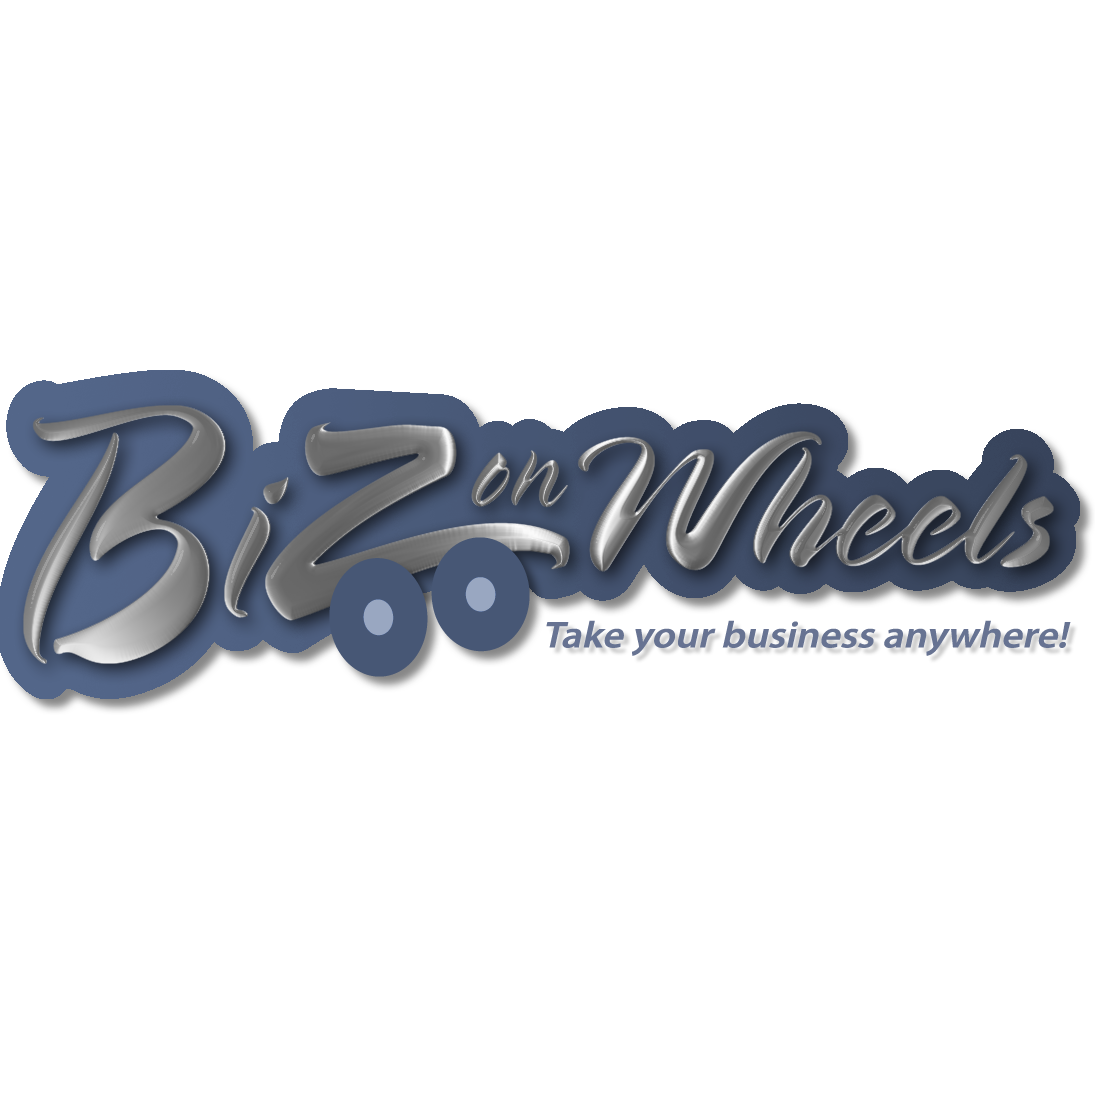 Biz On Wheels image 12